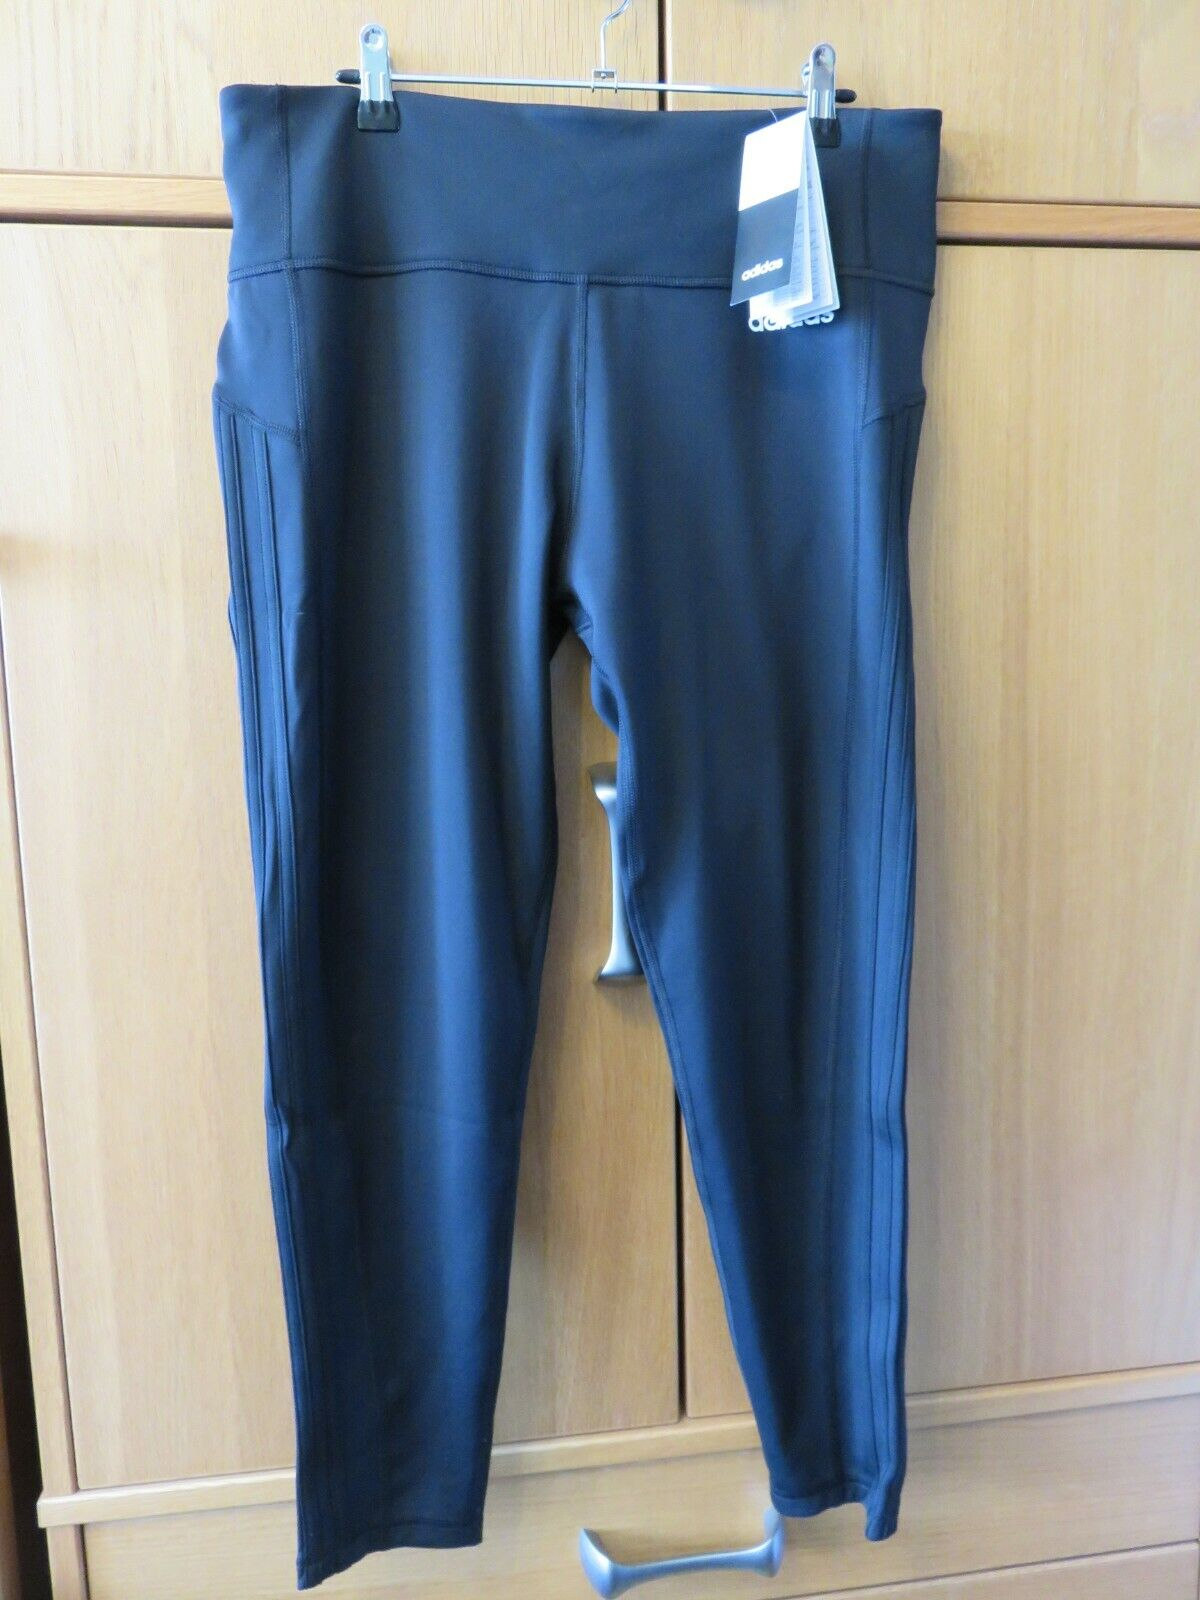 ADIDAS W 3S 7/8 Women's Workout Tights - Black - 7/8 Length - Size S - NEW